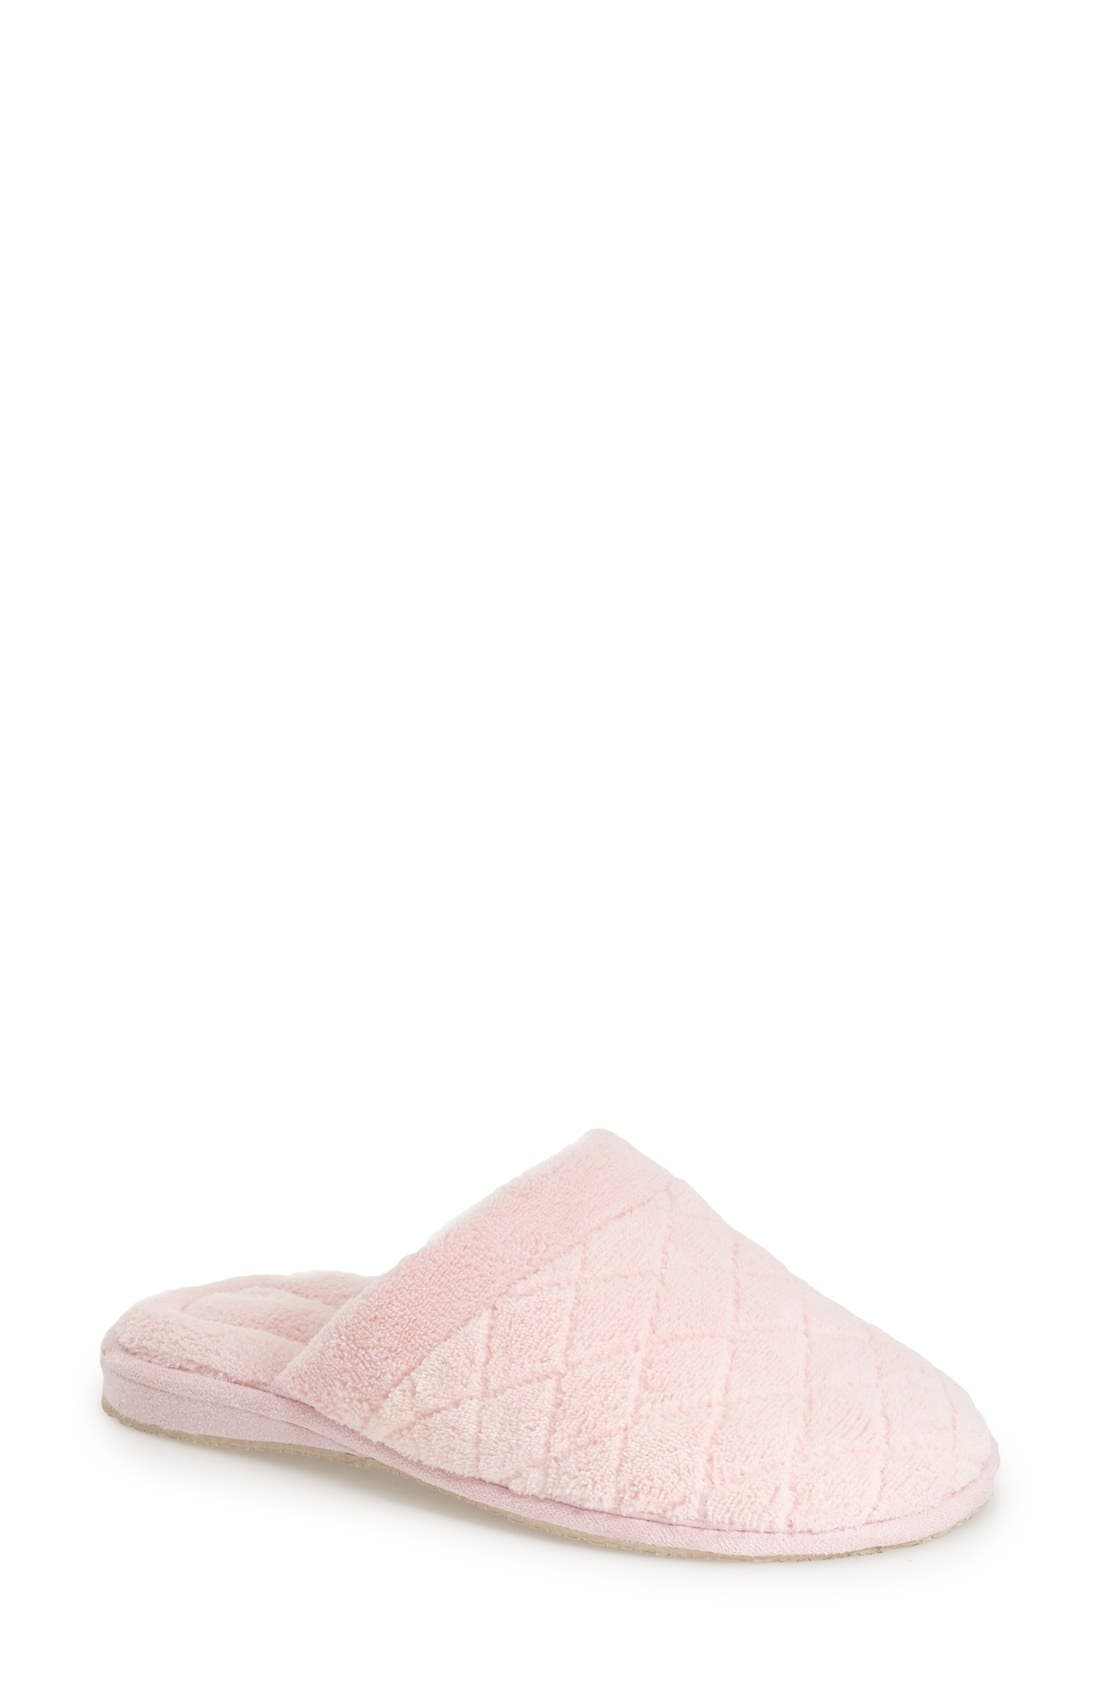 'Aria' Plush Slipper,                             Main thumbnail 3, color,